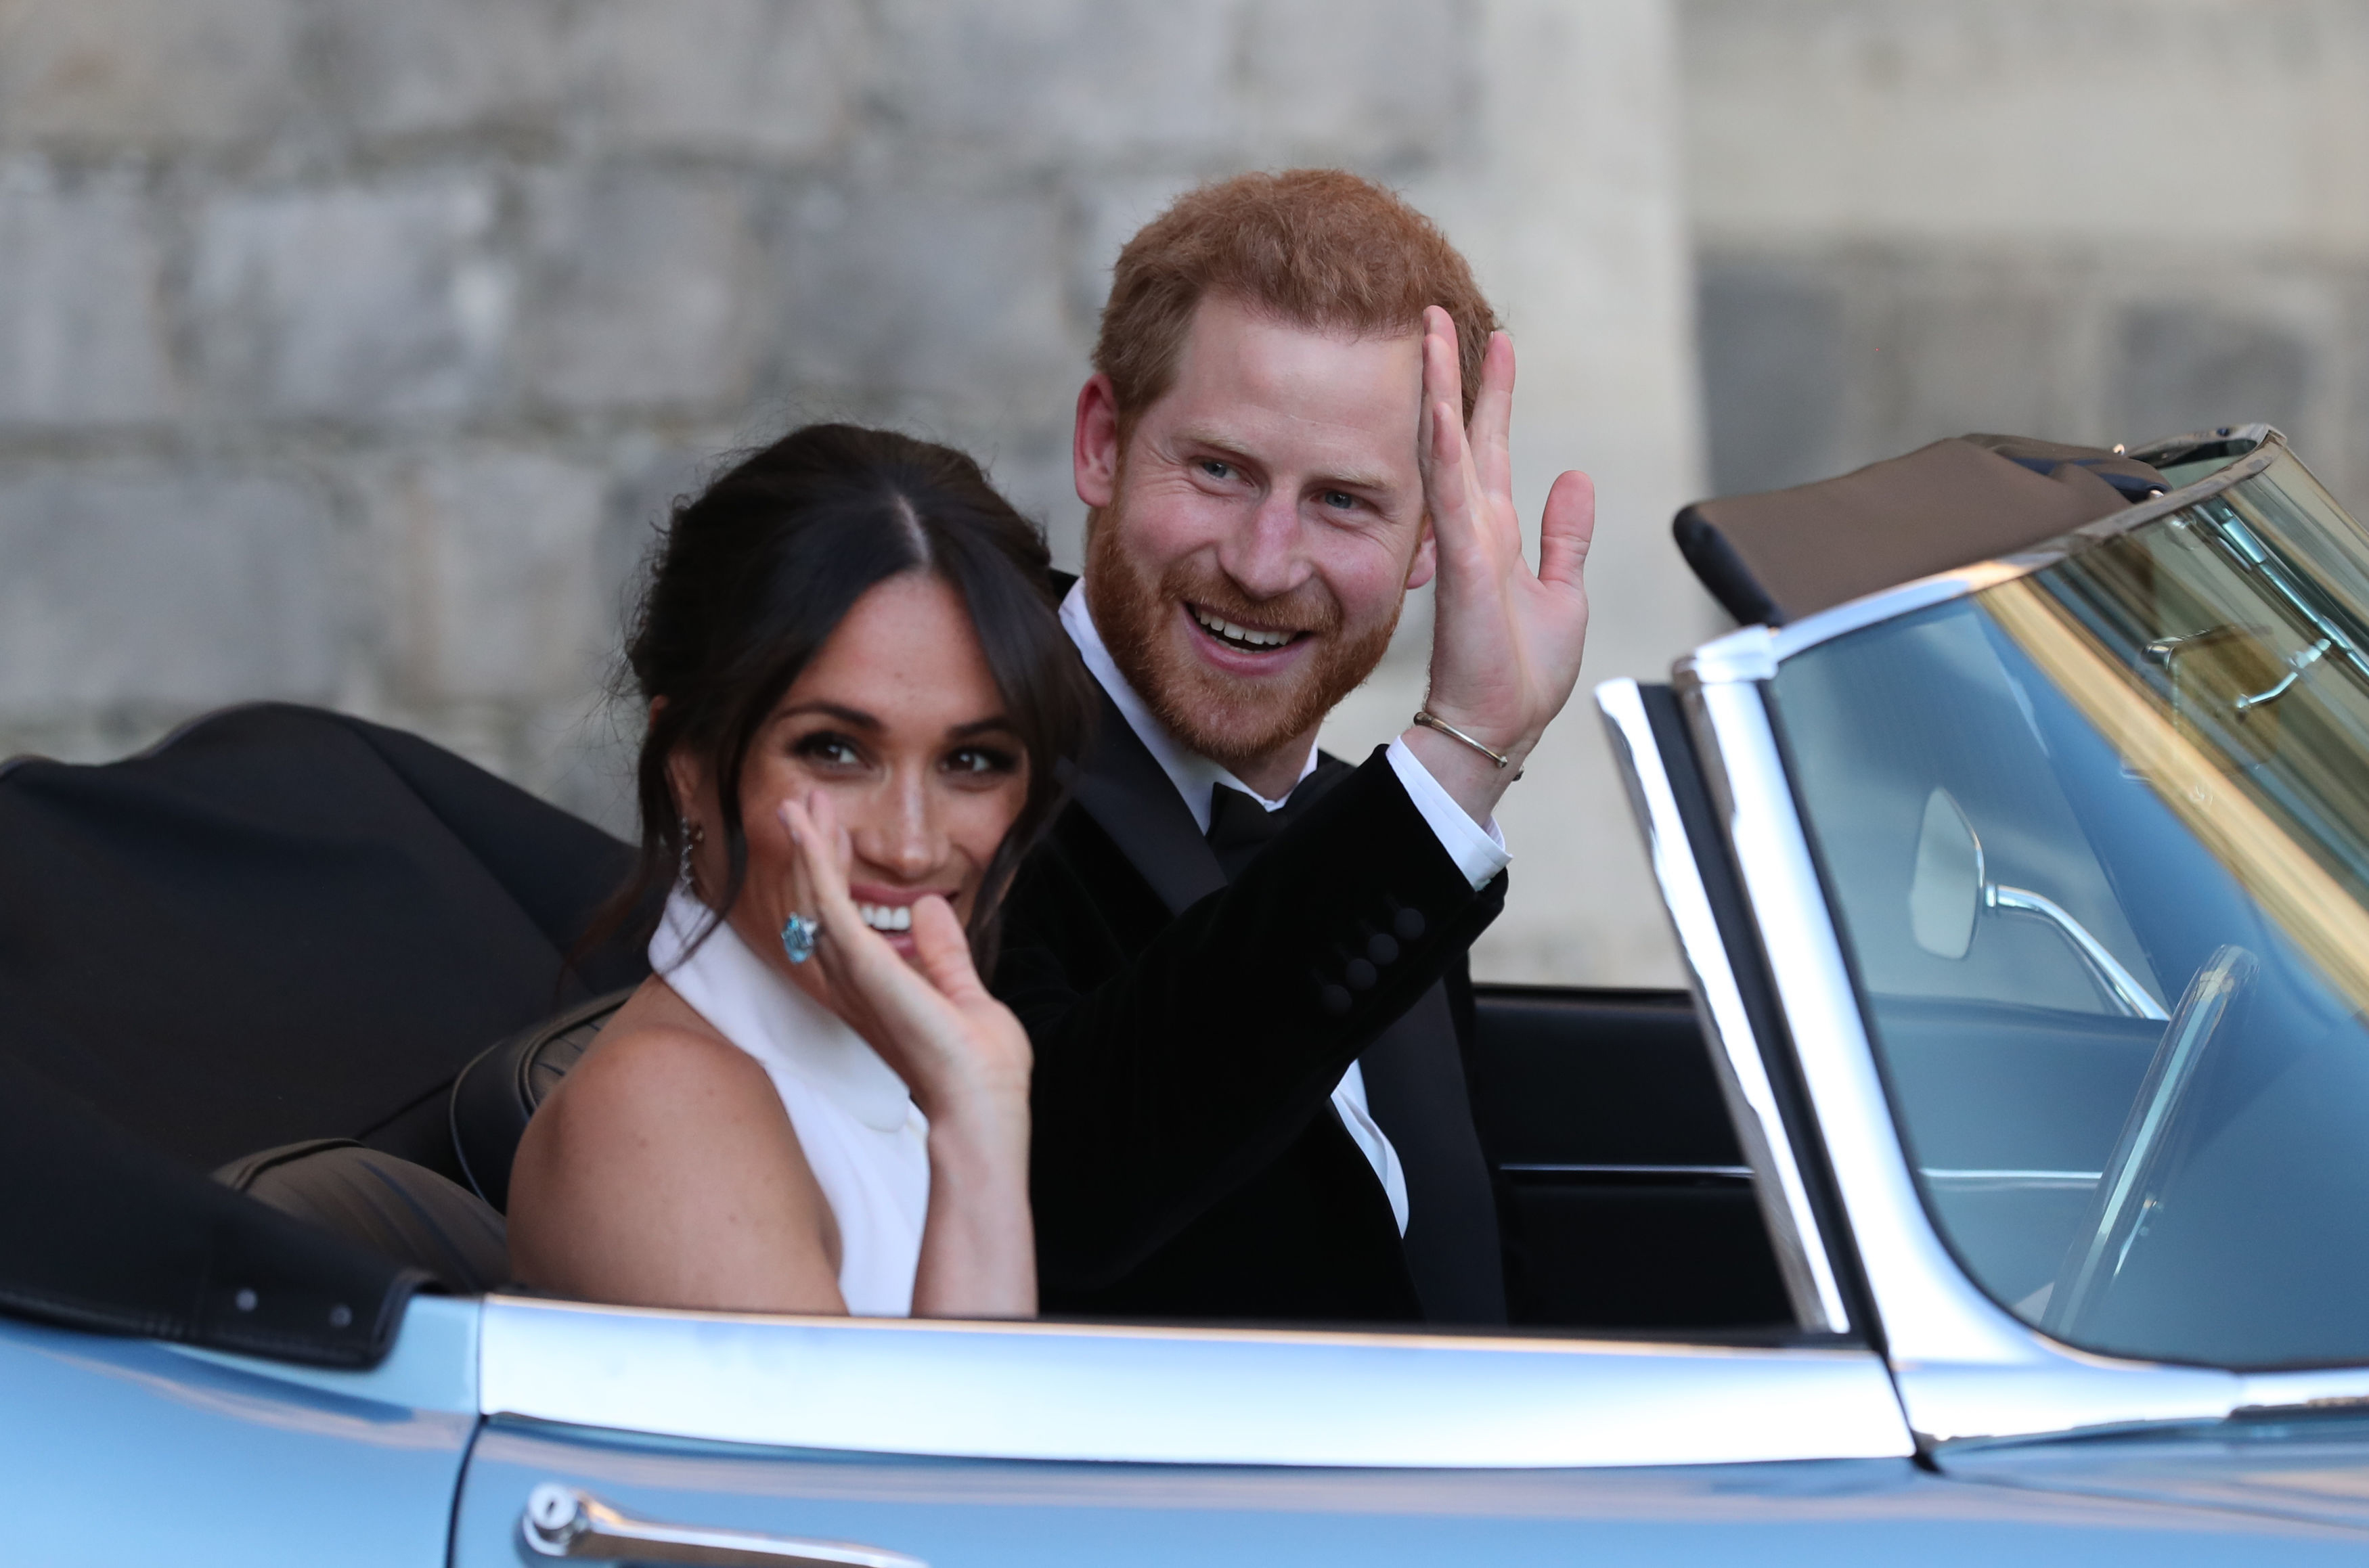 The newly married Duke and Duchess of Sussex, Meghan Markle and Prince Harry, leaving Windsor Castle after their wedding to attend an evening reception at Frogmore House, hosted by the Prince of Wales. (Steve Parsons/PA)